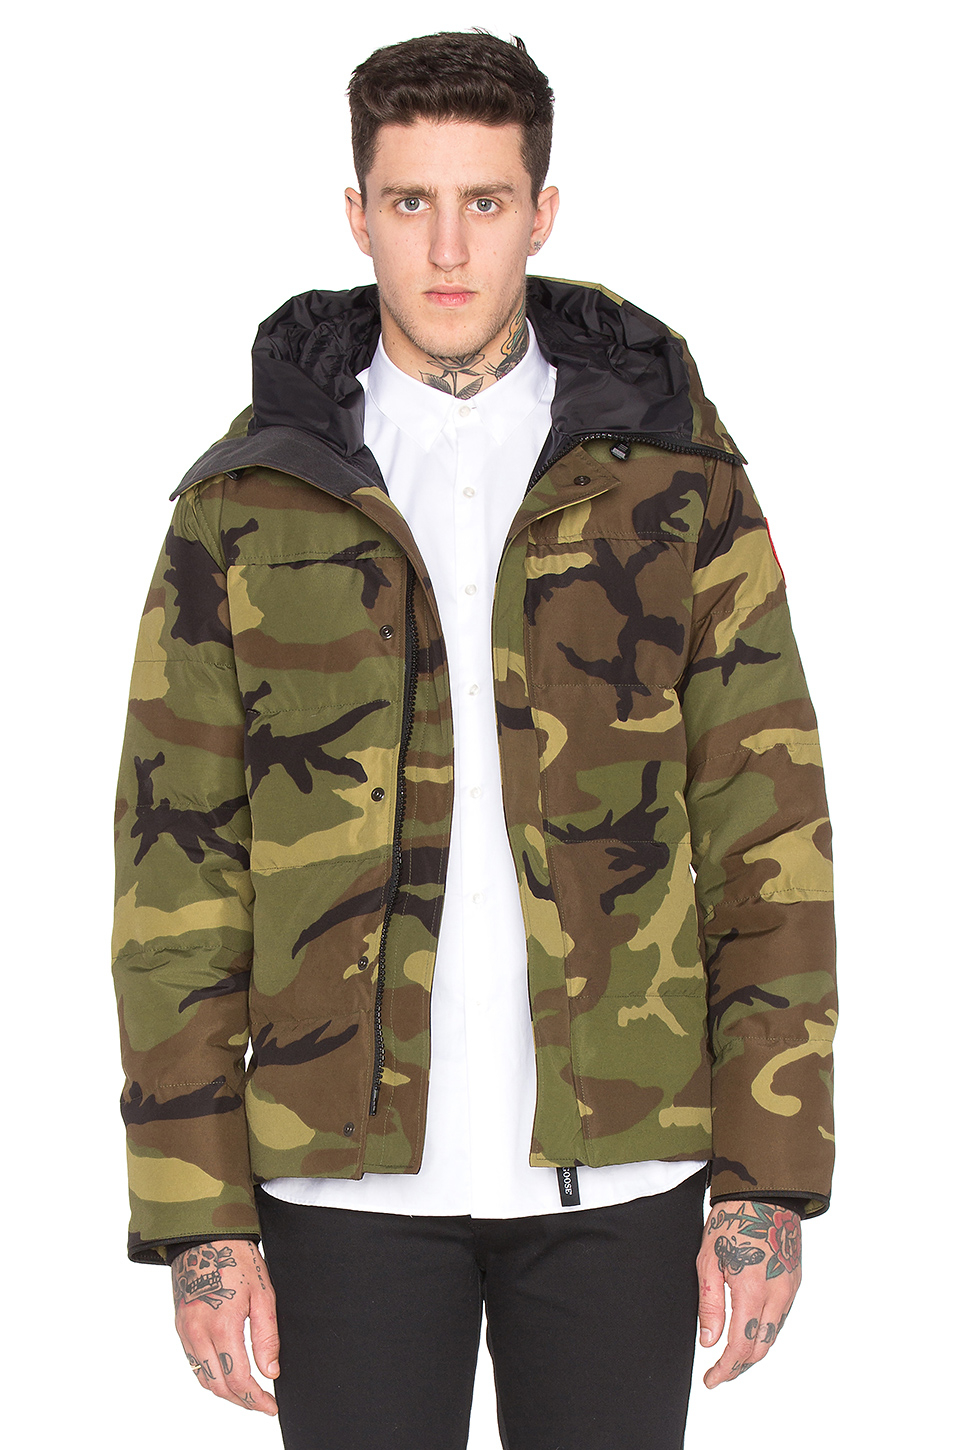 0411499c3295 uk lyst canada goose macmillan parka in green for men 1a9c1 7076f